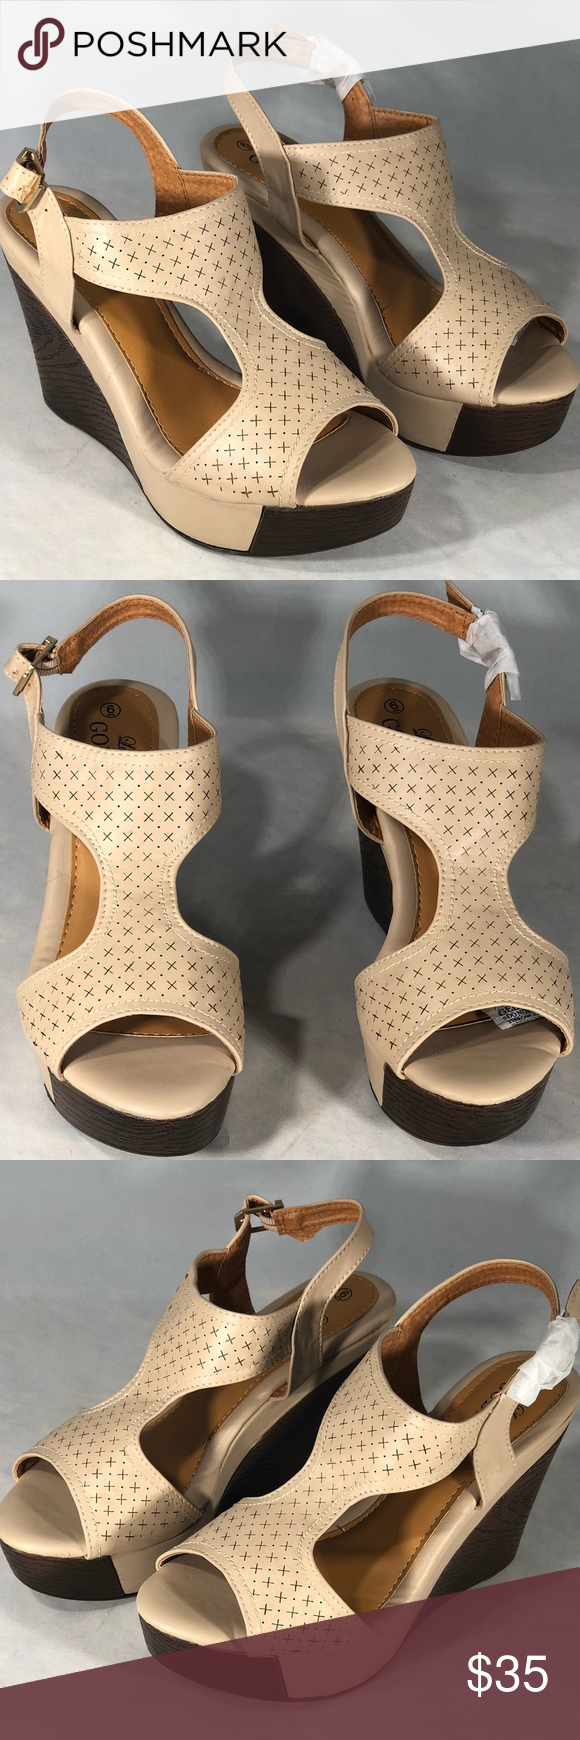 269cd0ff56a9 Lady Godiva Women s T-Strap Wedge Sandals Lady Godiva Women s T-Strap Wedge  Sandals Size 6 Color Beige Step out in style with these t-strap sandals  with ...